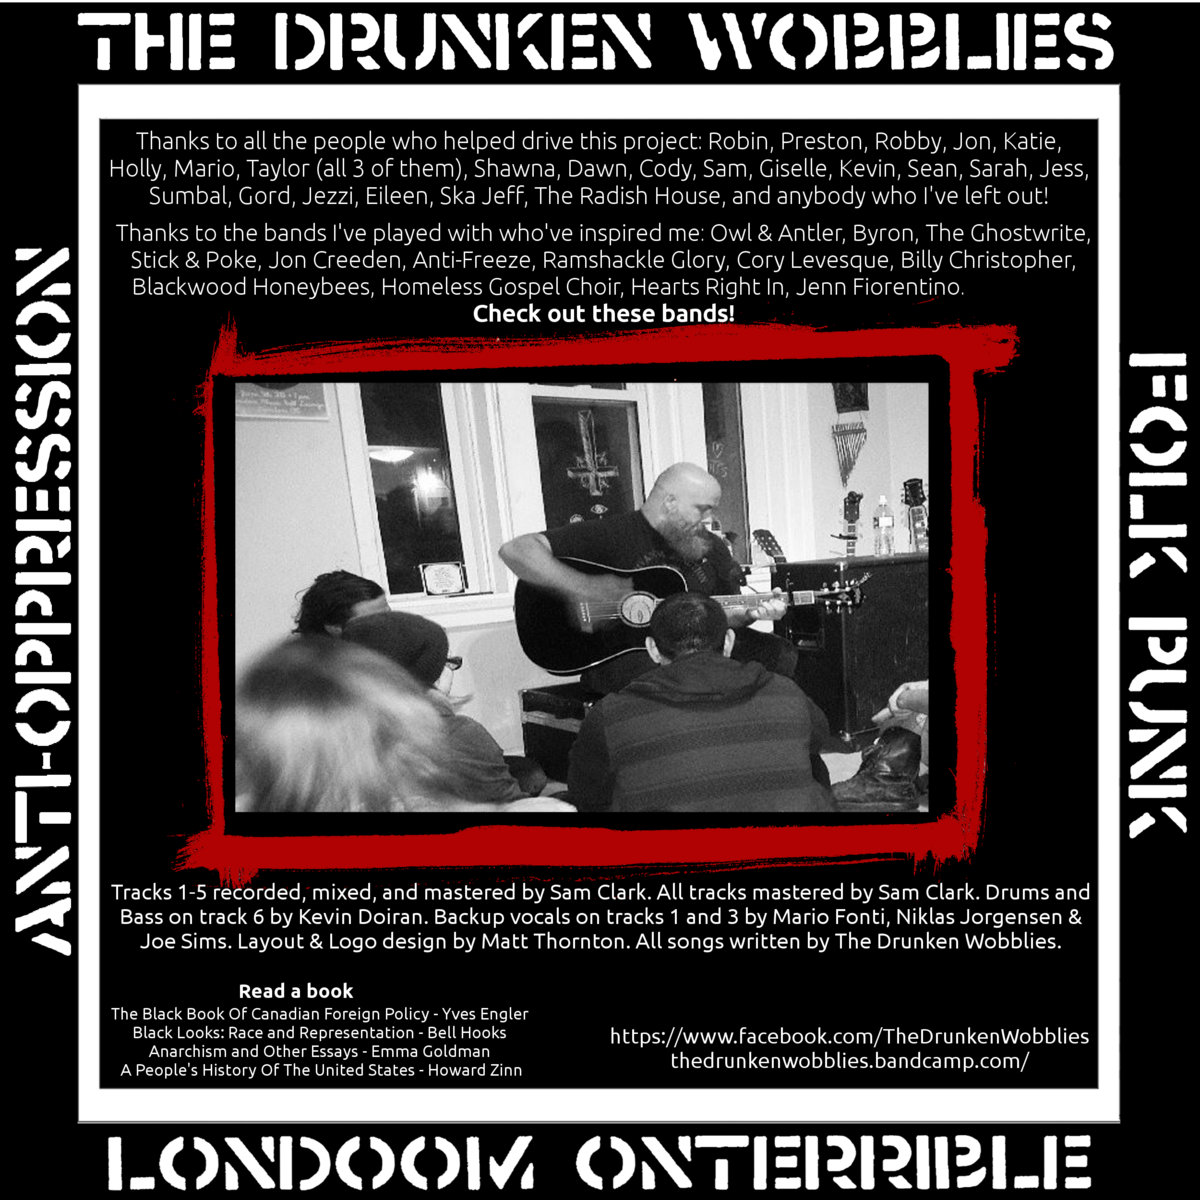 londoom onterrible the drunken wobblies package image · package image · package image